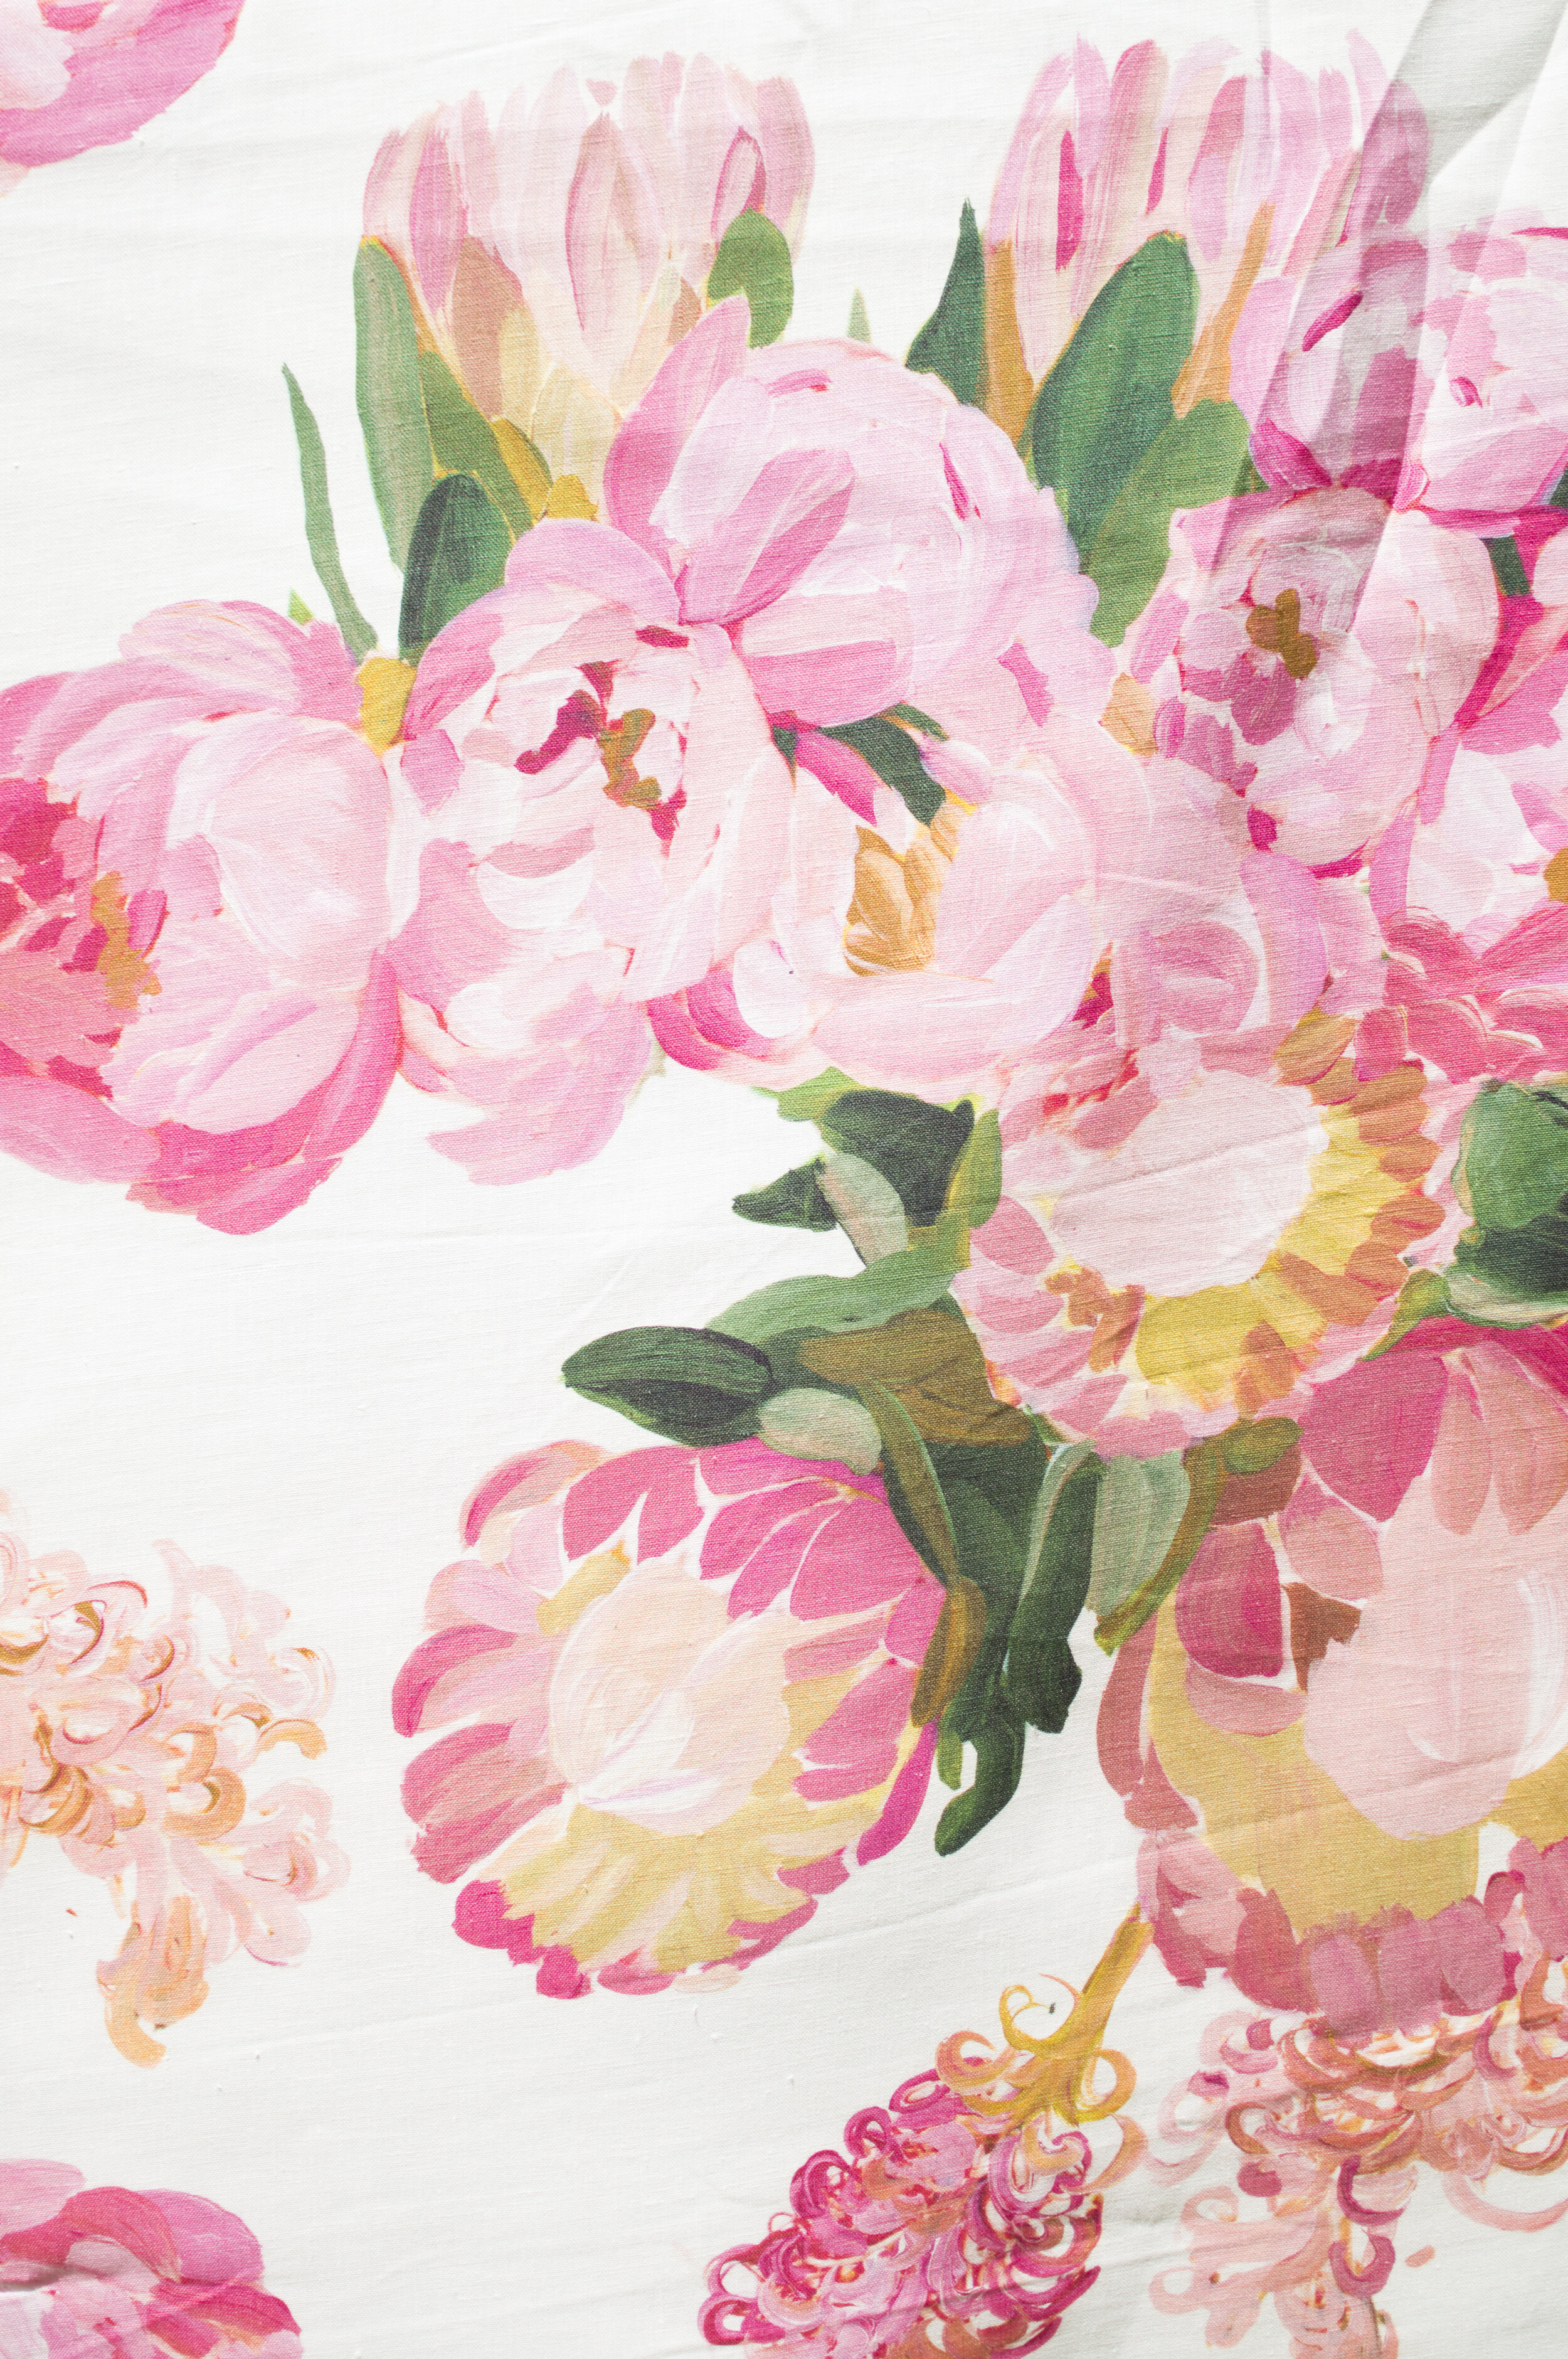 Foliage | PEONIES  Pink Peonies and Protea blooms arranged to play with scale and shape in this oversized, yet delicate, floral print. This lavish bed of flowers is our interpretation of a perfectly overgrown garden in the countryside.